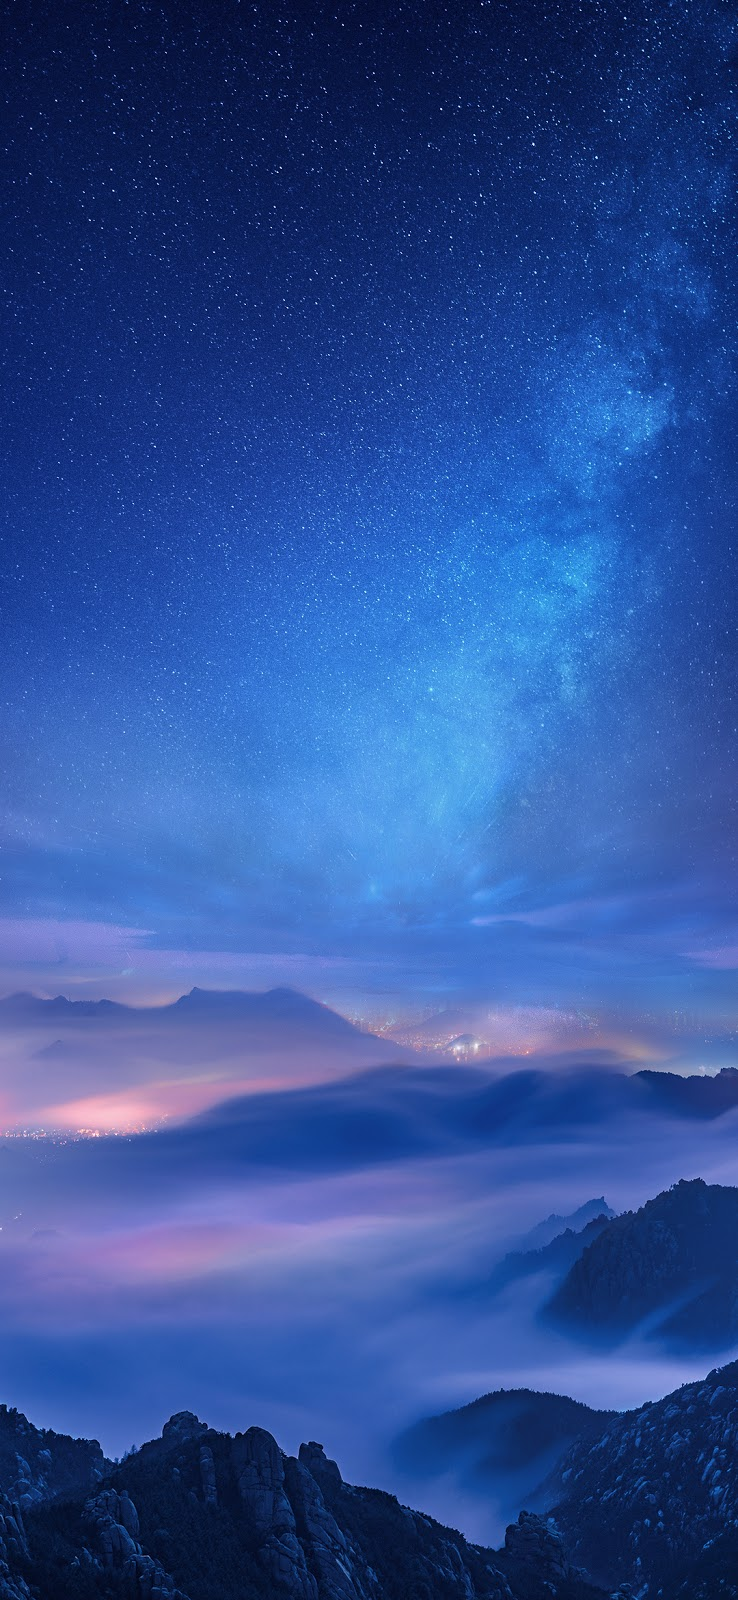 Milky night